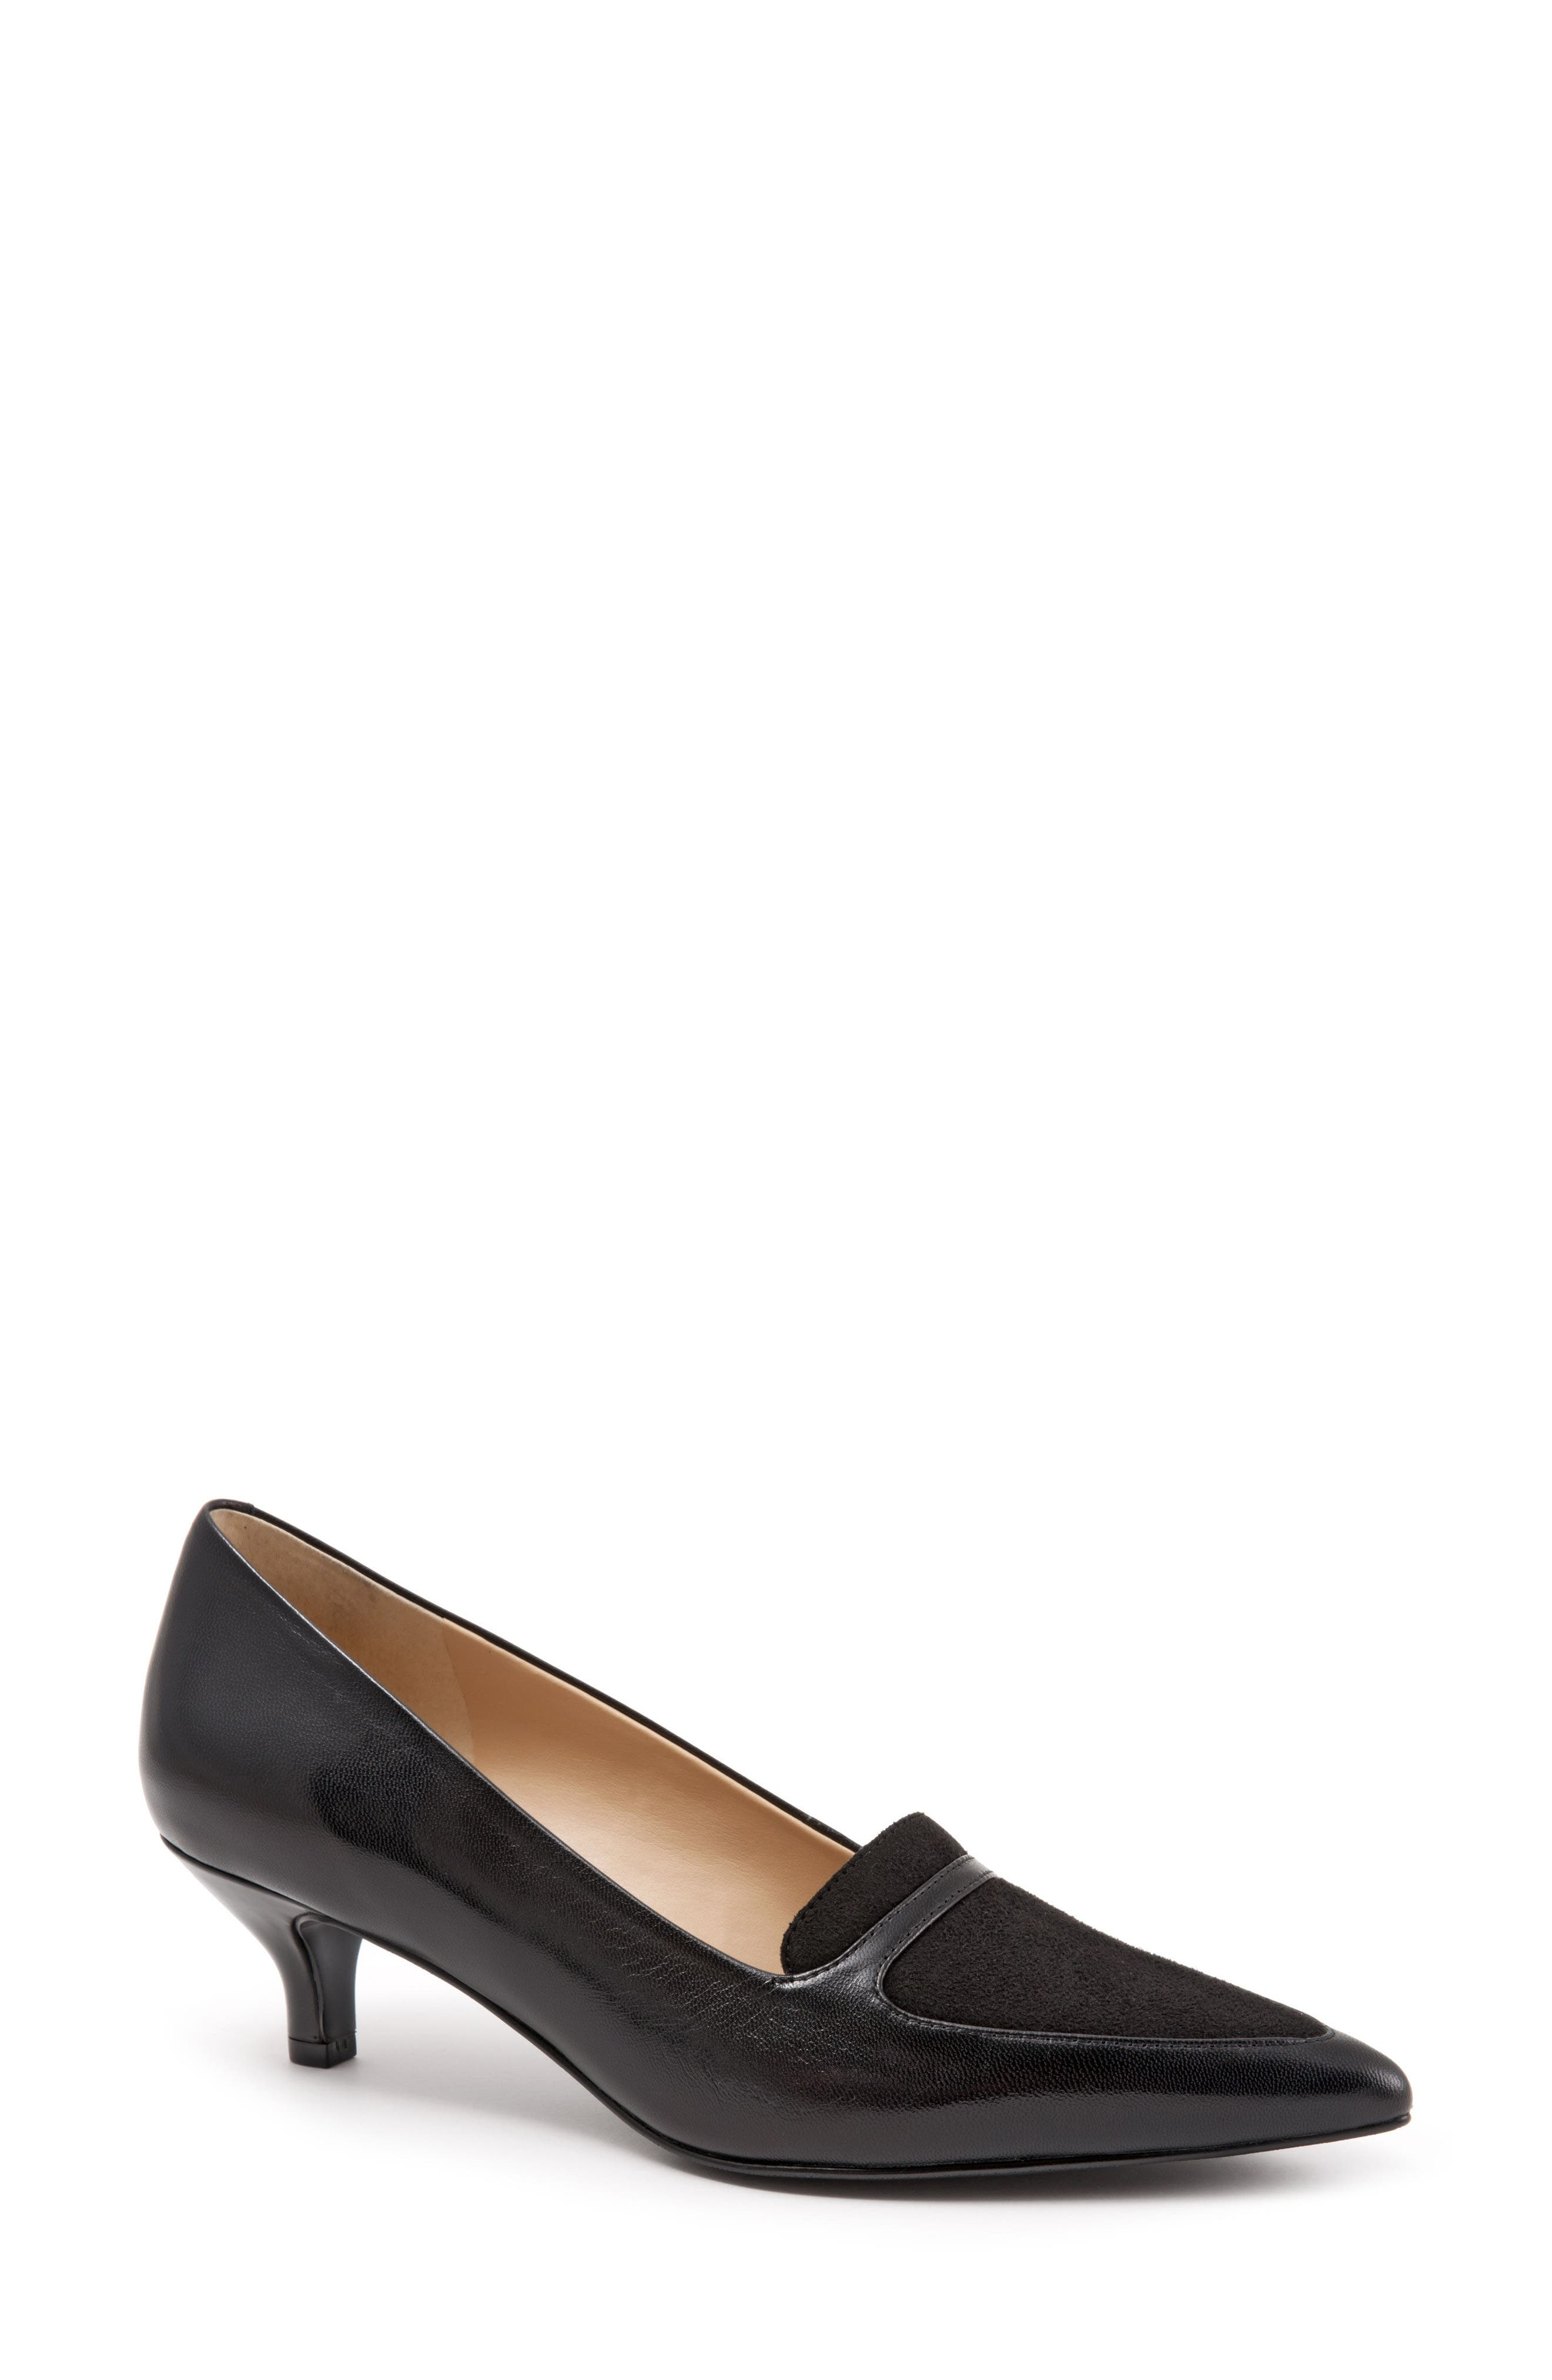 'Piper' Pointy Toe Pump,                         Main,                         color, 005